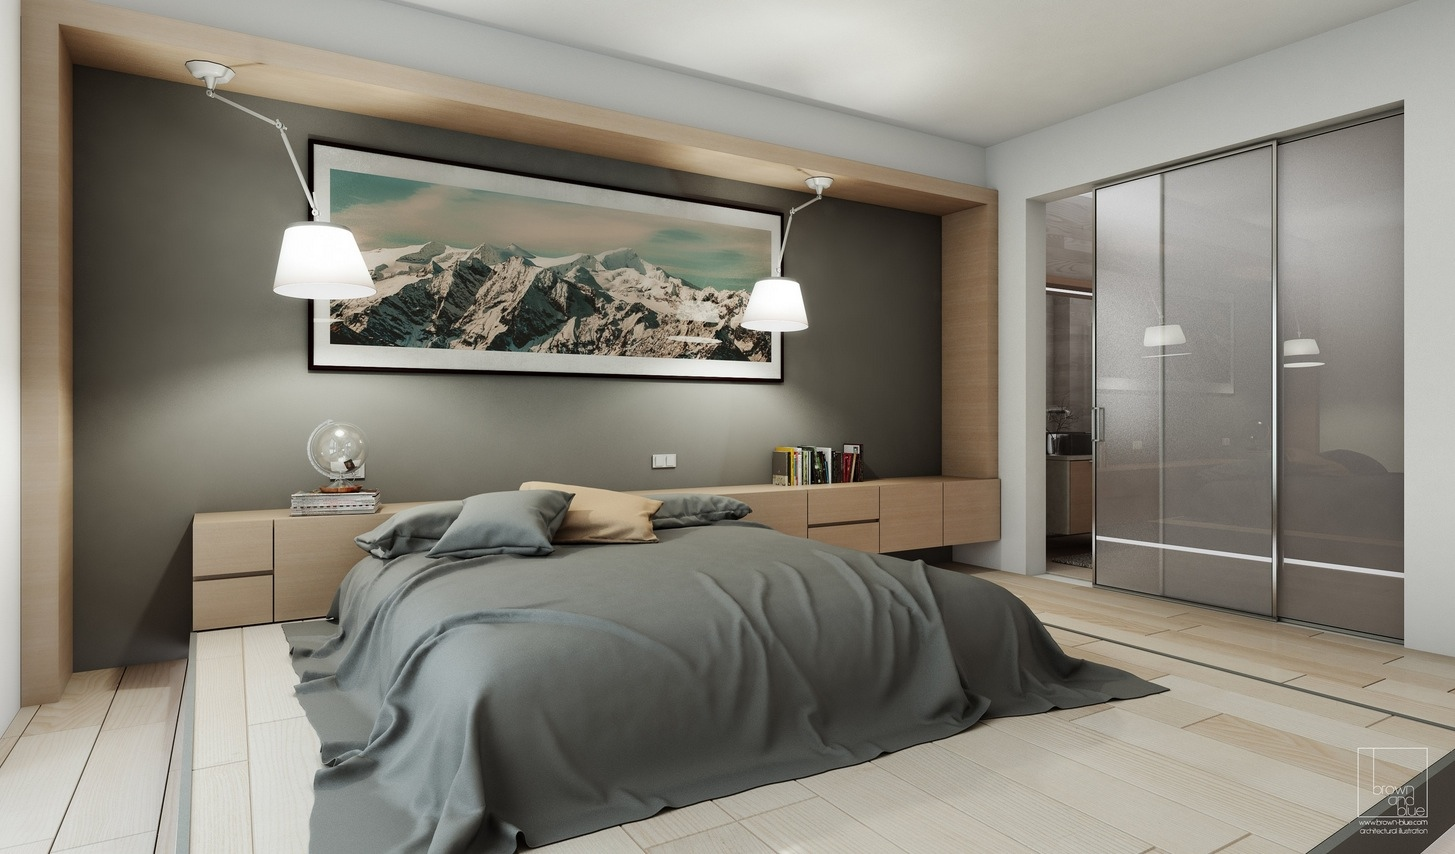 8 - Interior Bedroom Design